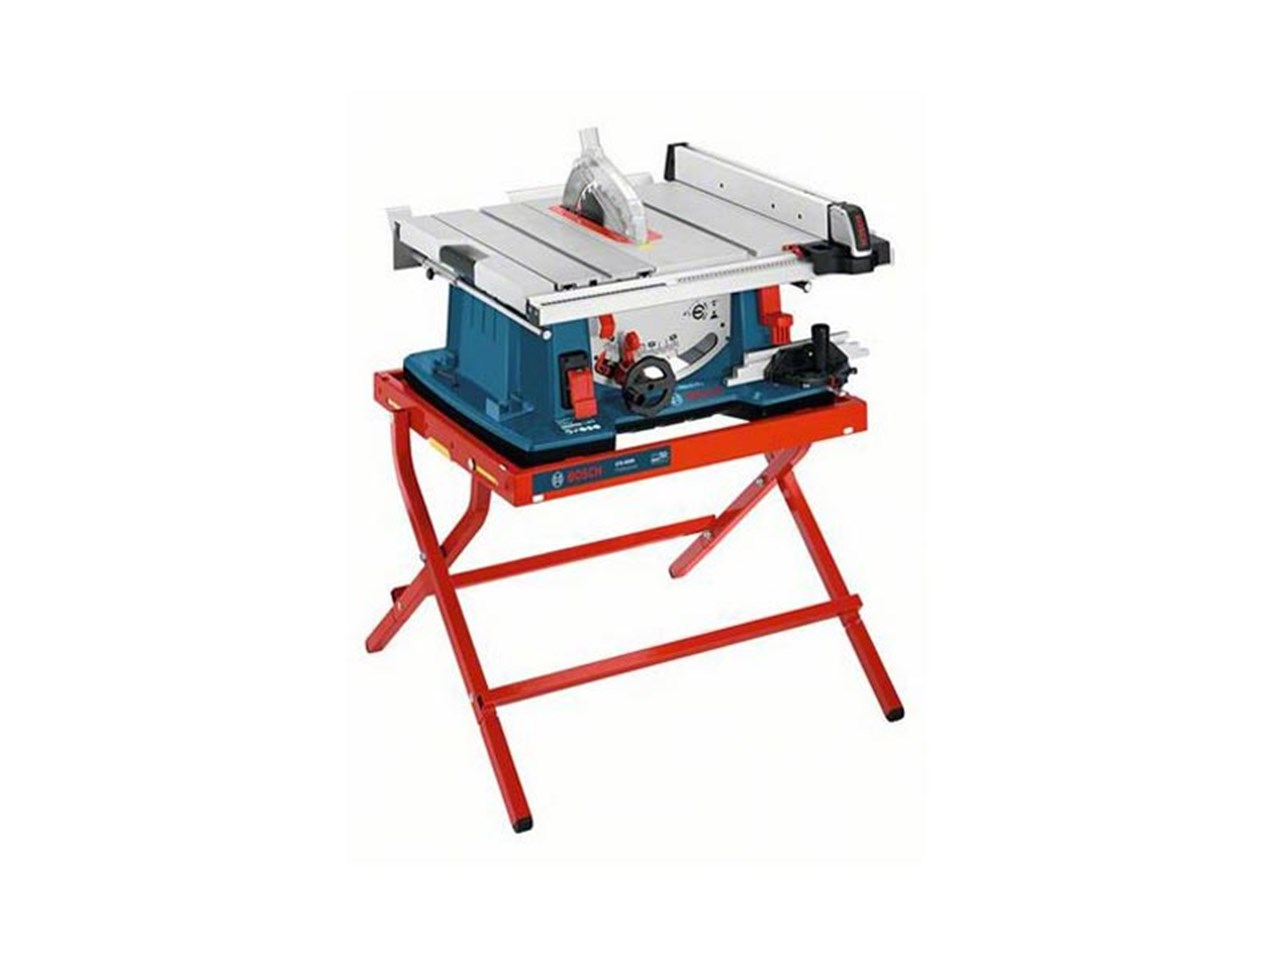 Bosch gts10xc2 gta6000 240v 10in professional table saw and stand keyboard keysfo Choice Image